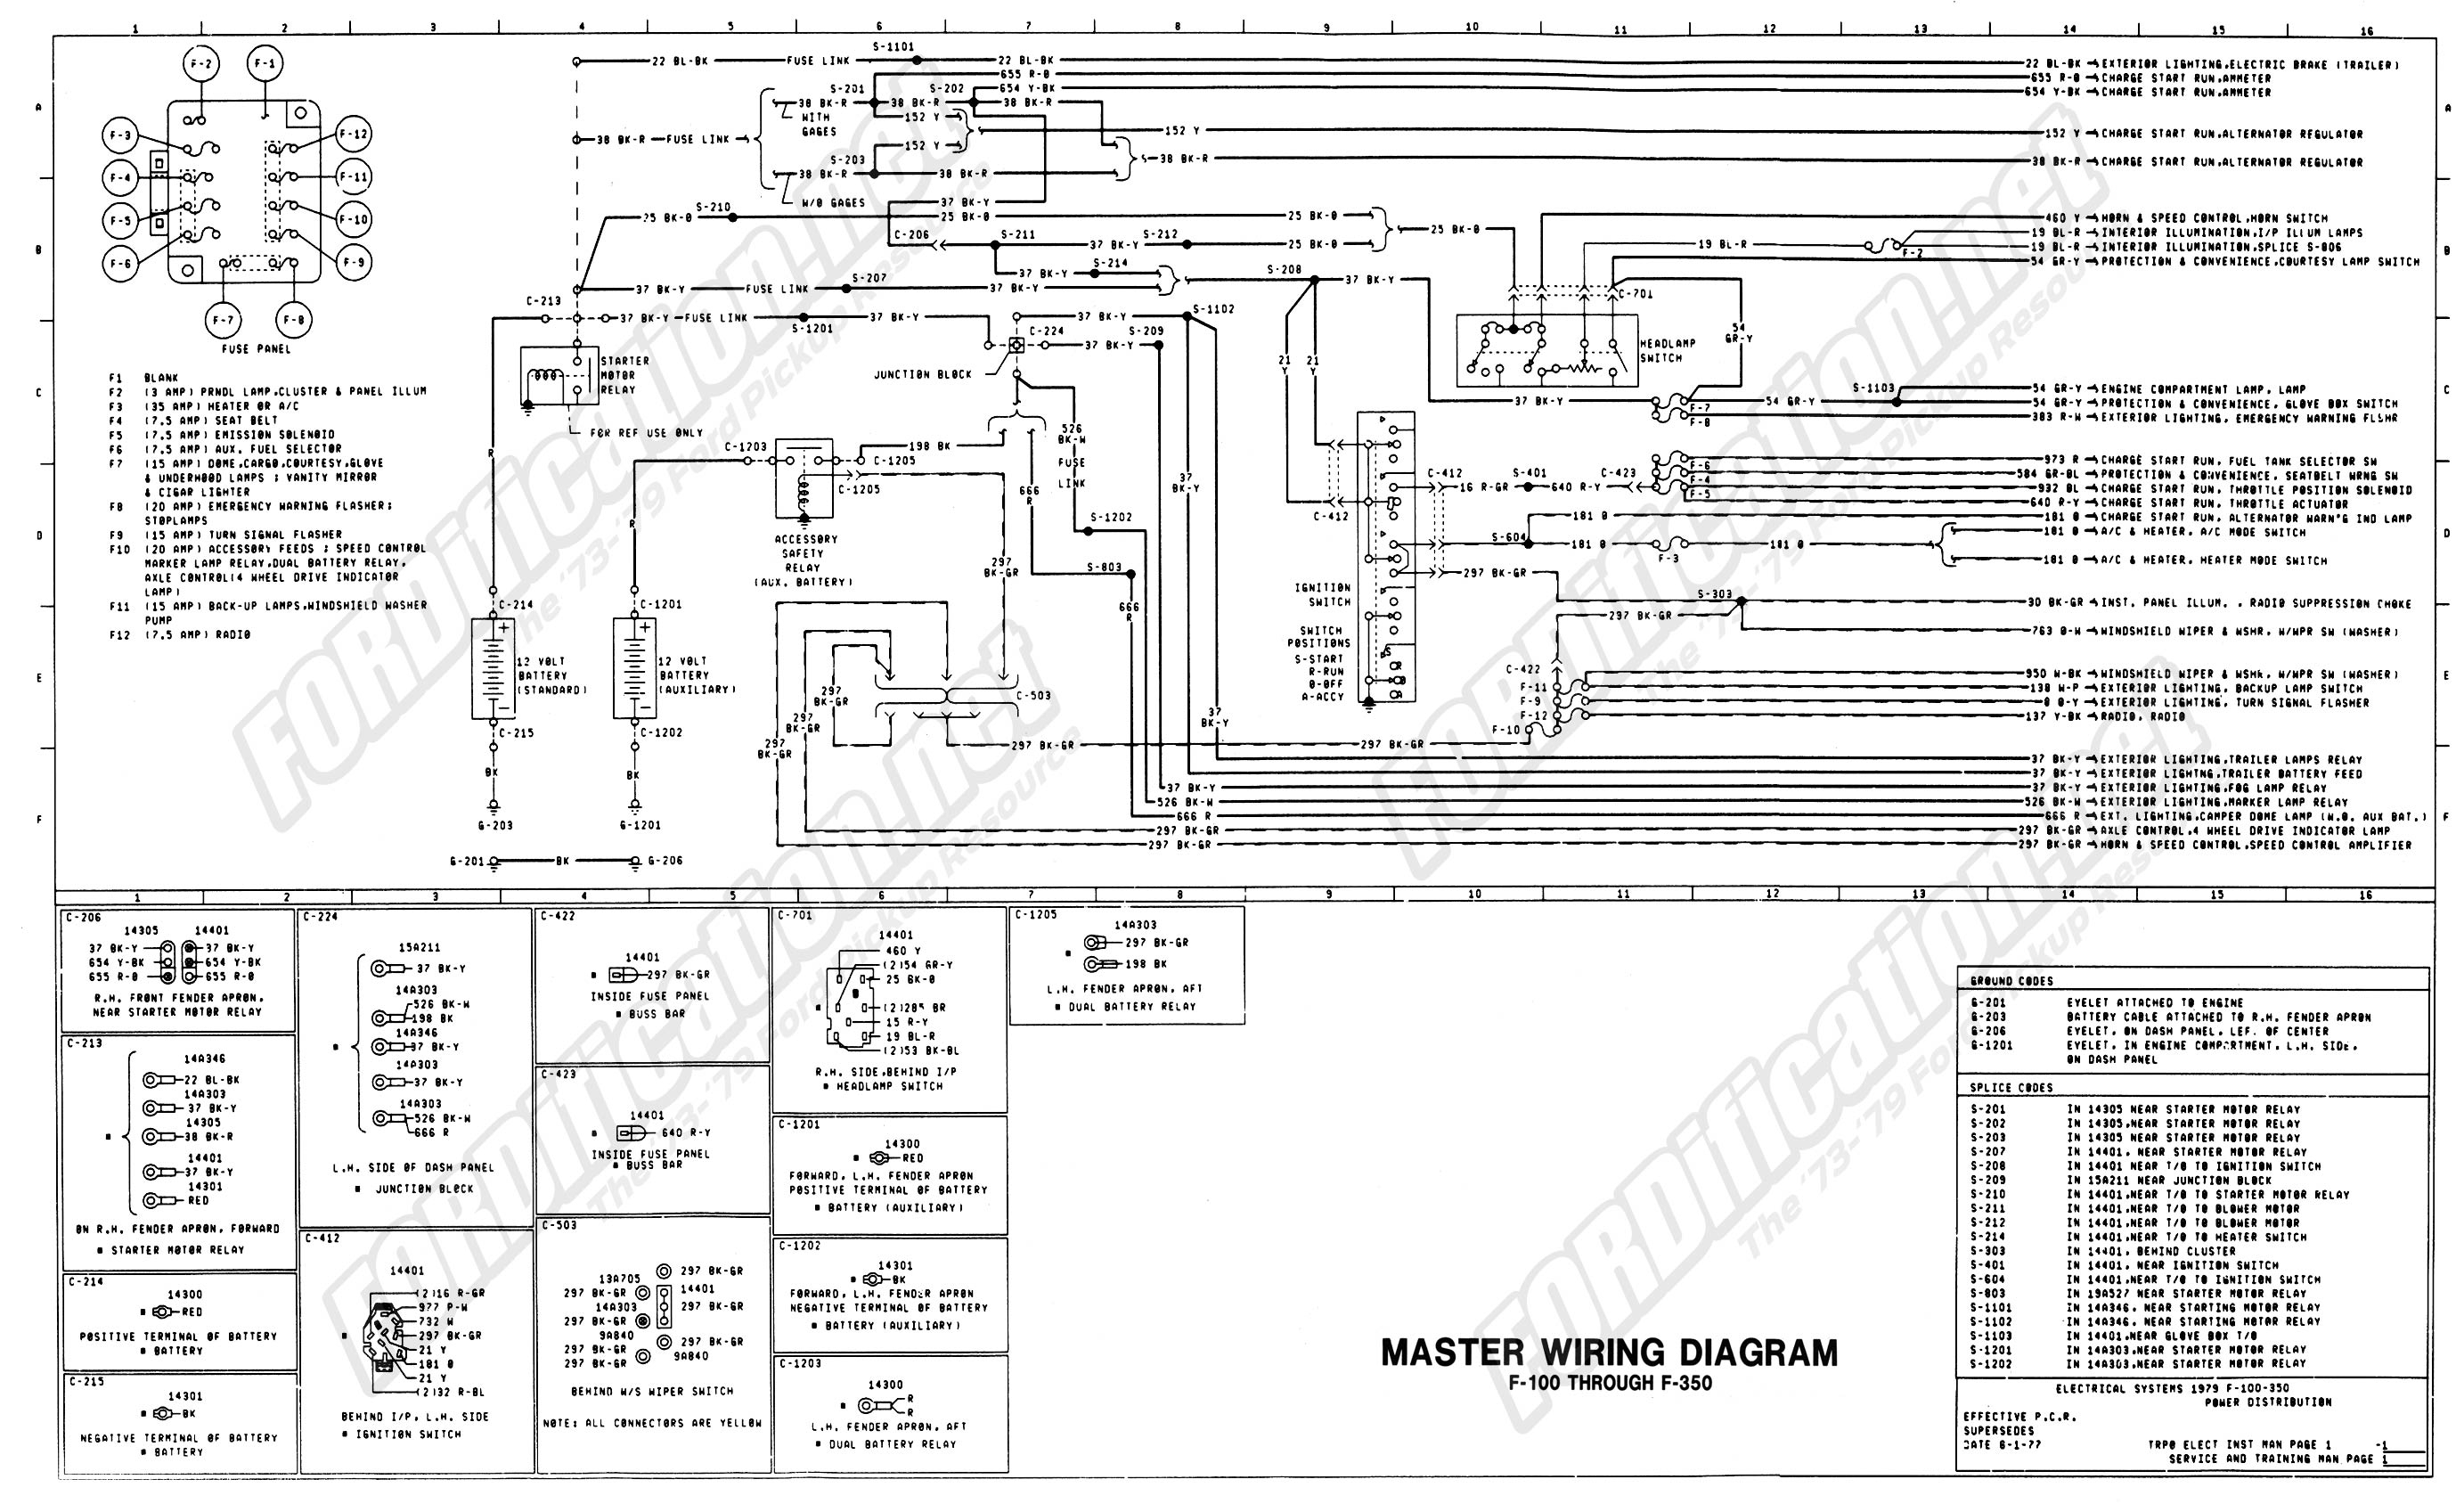 international truck wiring diagram Download-wiring 79master 1of9 20-q